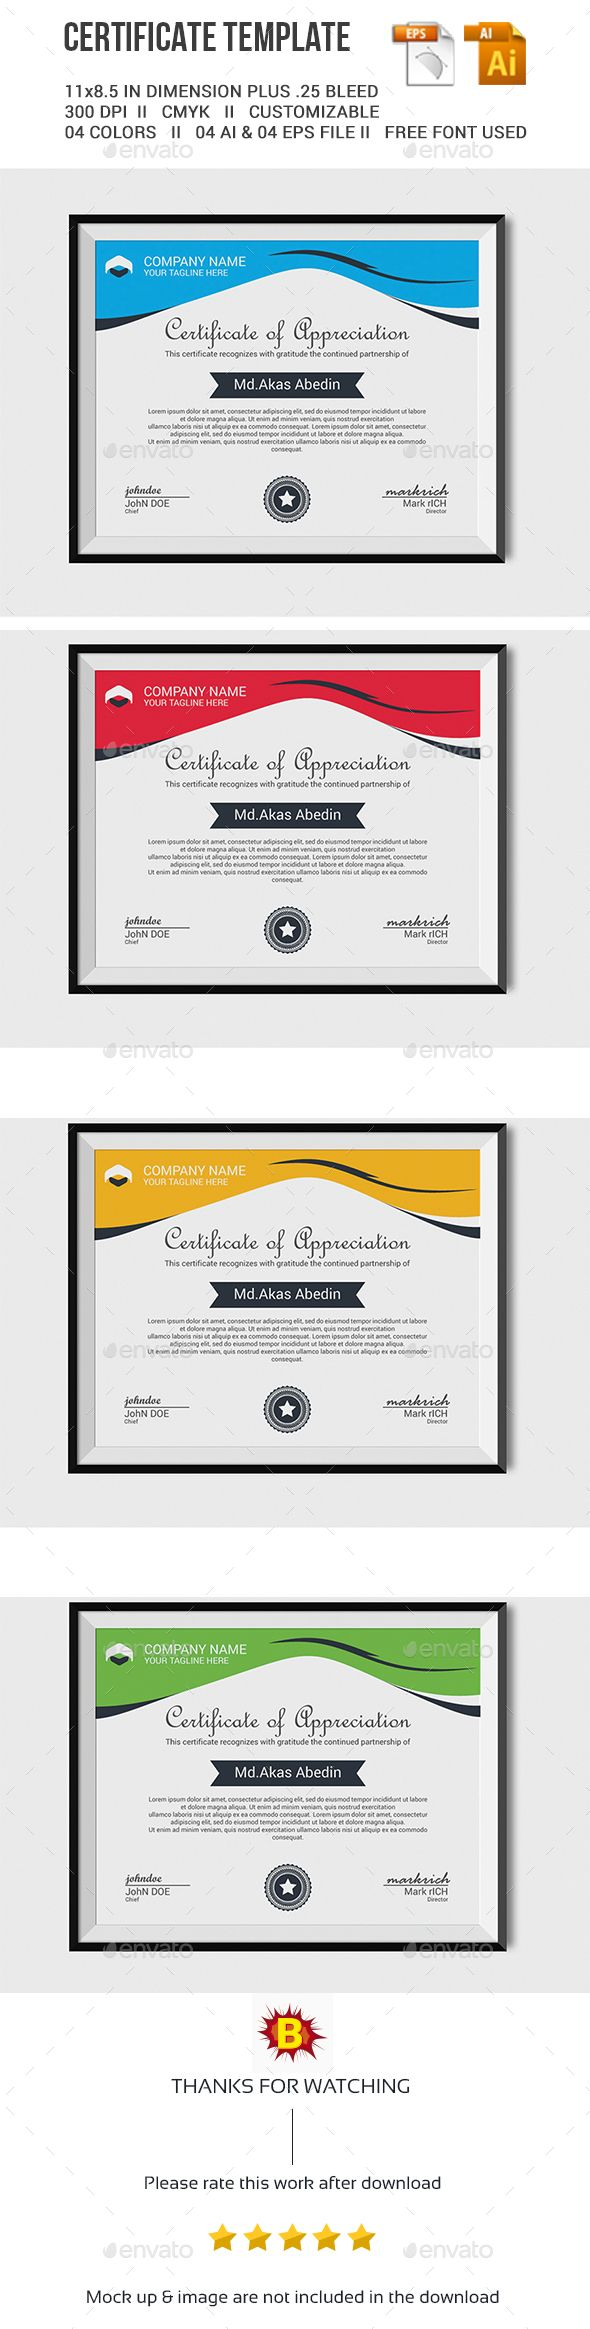 90 best certificate images on pinterest preschool award certificate template alramifo Image collections